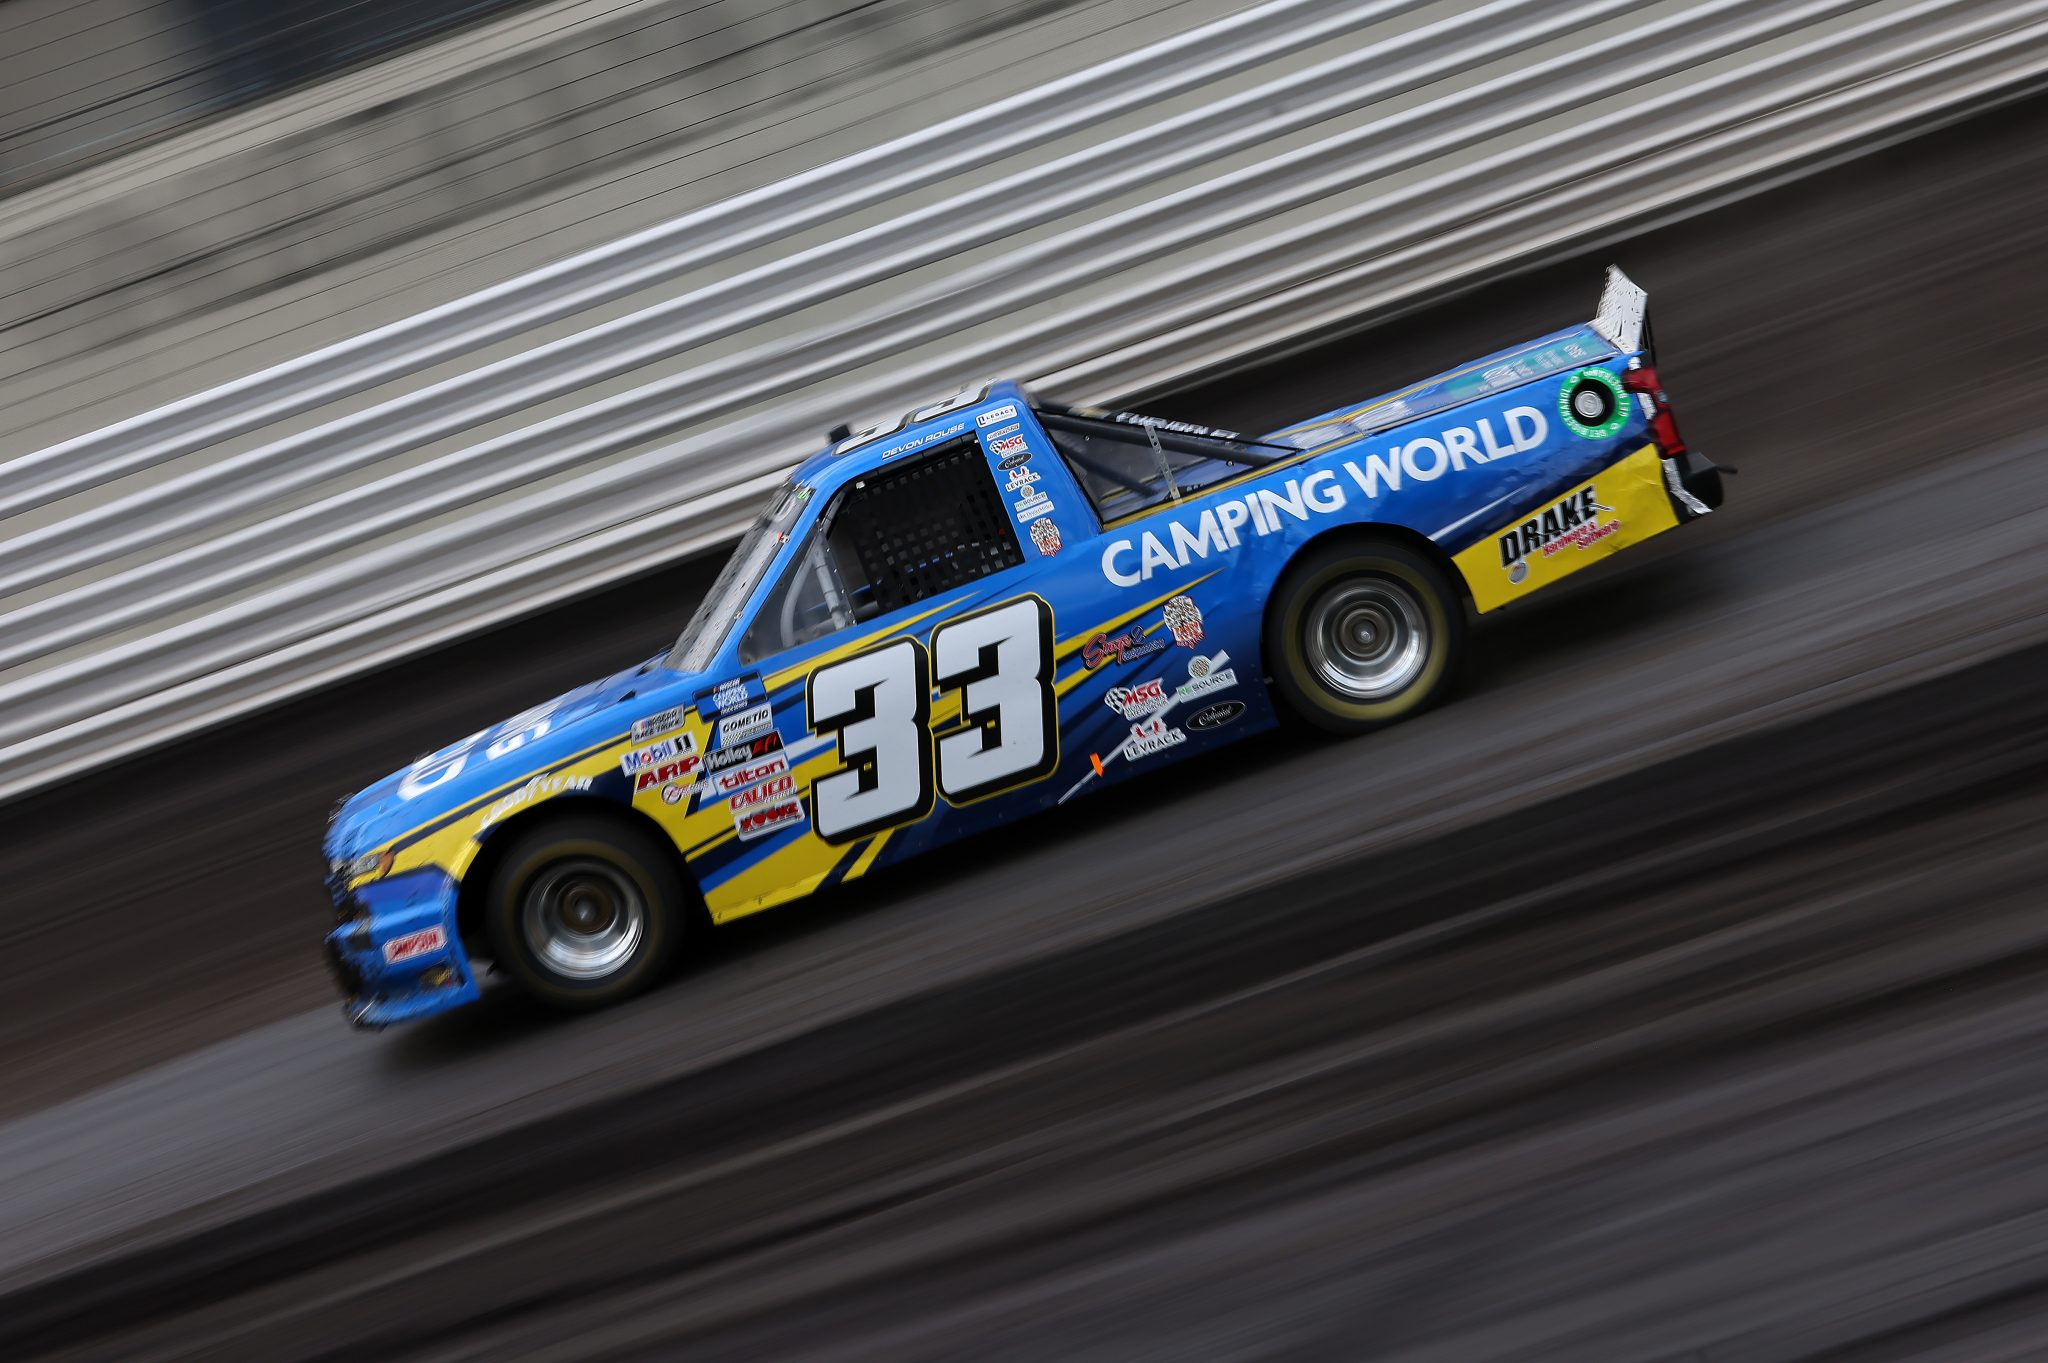 KNOXVILLE, IOWA - JULY 09: Devon Rouse, driver of the #33 Camping World Chevrolet, drives during qualifying for the NASCAR Camping World Truck Series Corn Belt 150 presented by Premier Chevy Dealers at Knoxville Raceway on July 09, 2021 in Knoxville, Iowa. (Photo by James Gilbert/Getty Images) | Getty Images